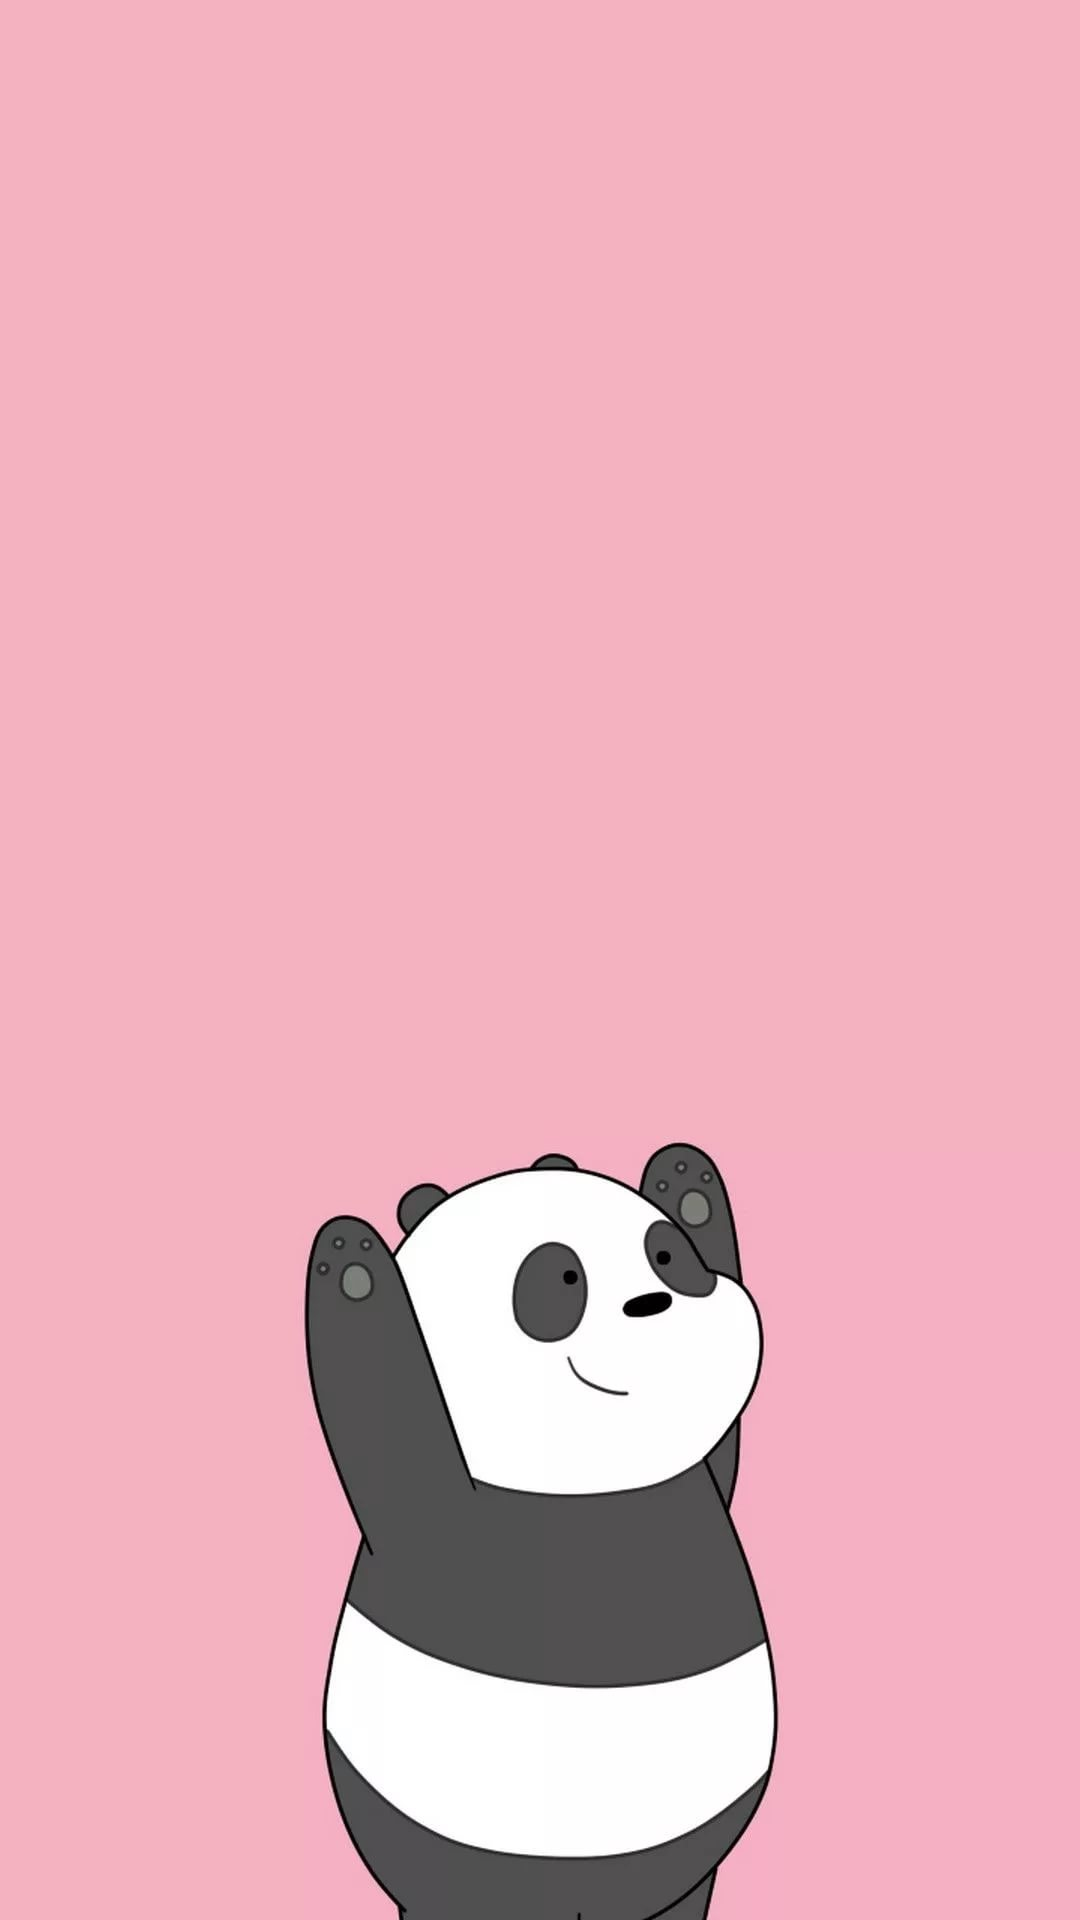 Cute iPhone hd wallpaper